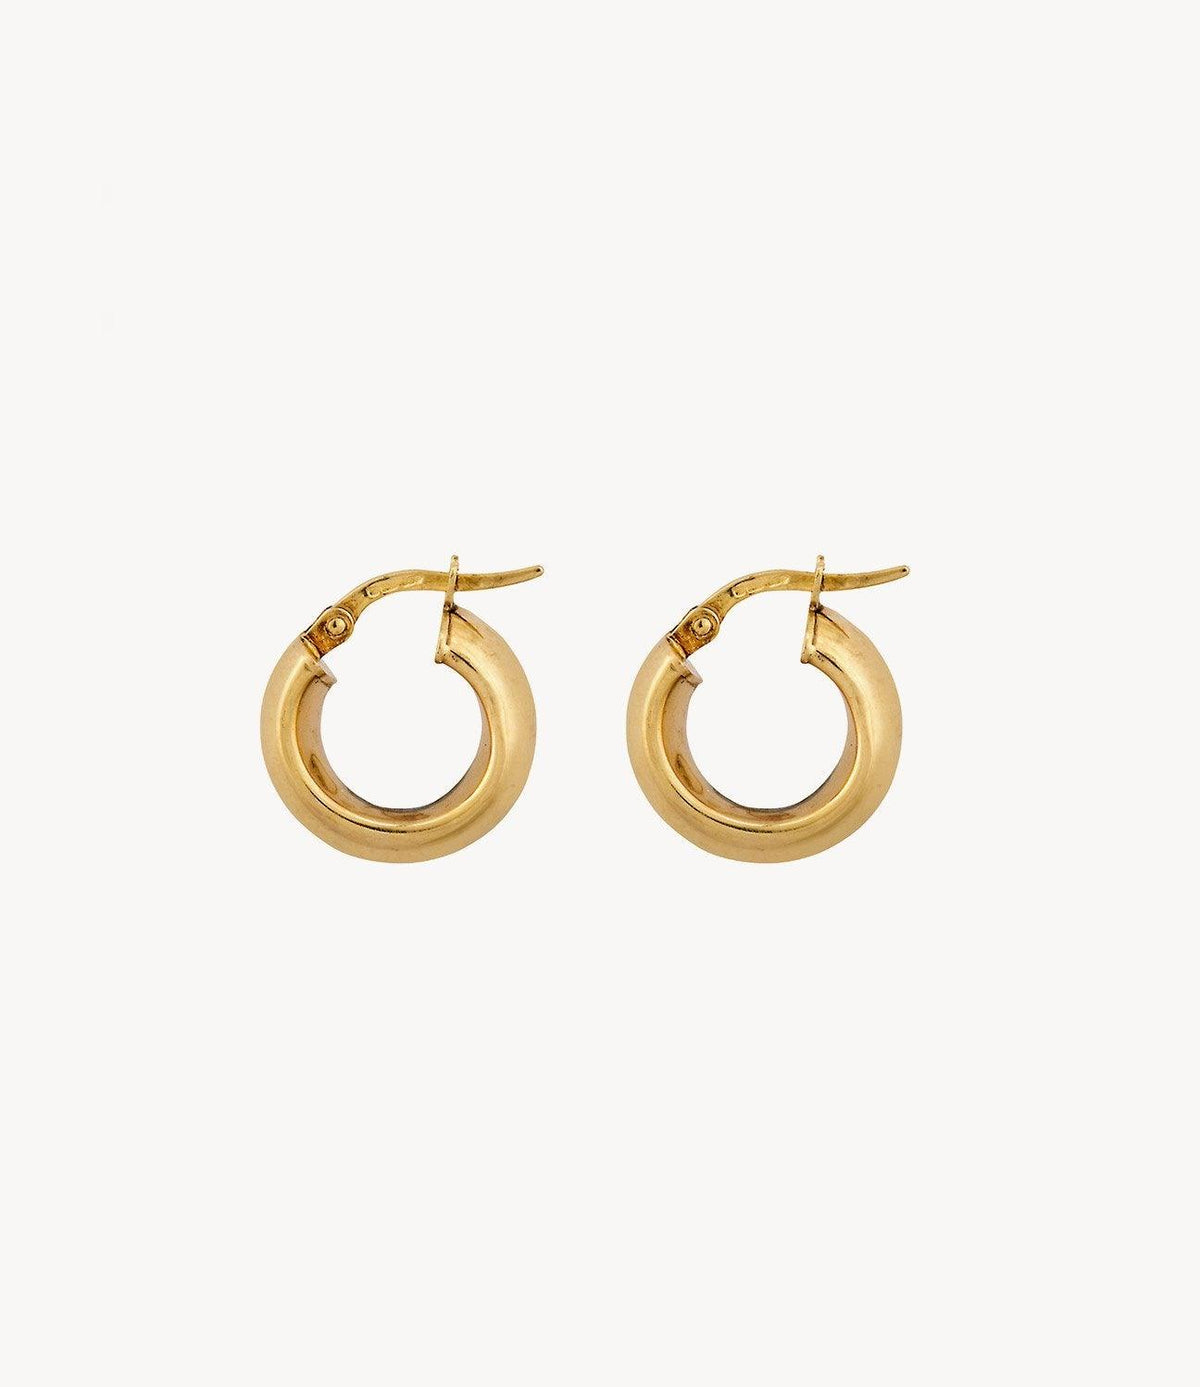 The Round Gold Hoops